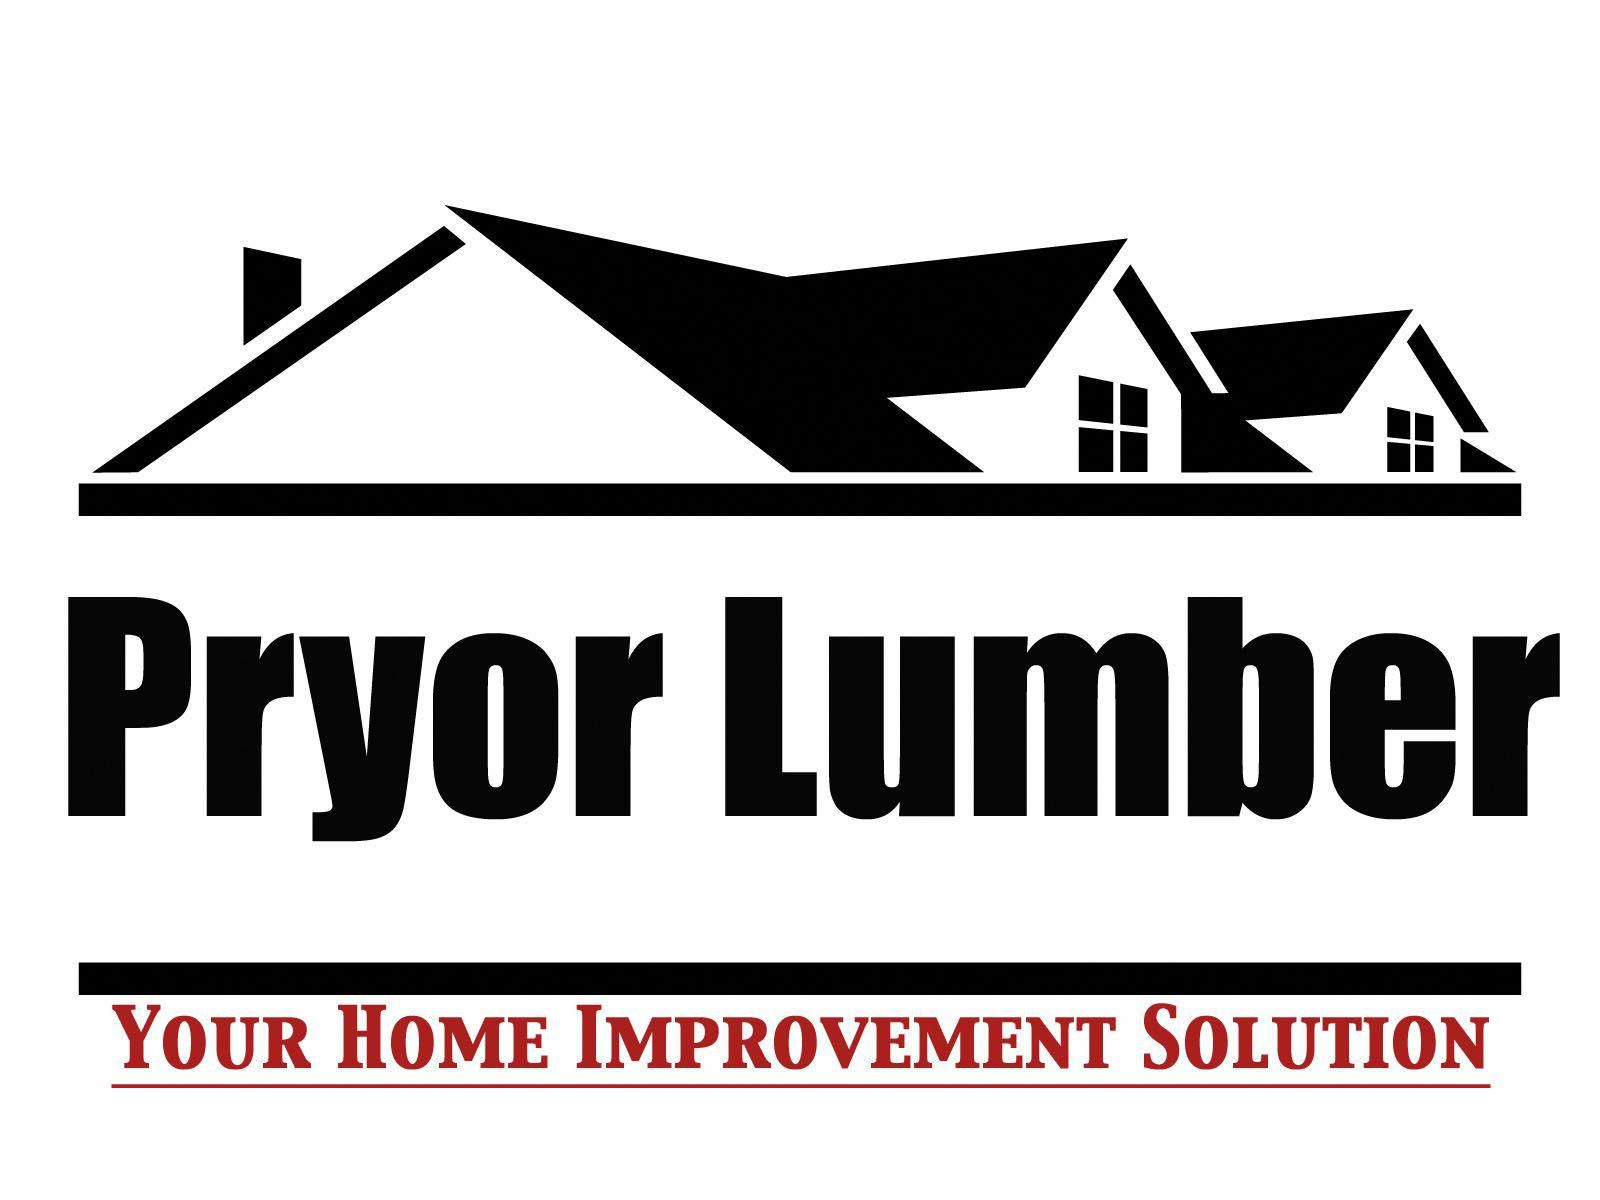 Home Repair Companies Home Improvement Companies Logos Info On Affording House Repairs